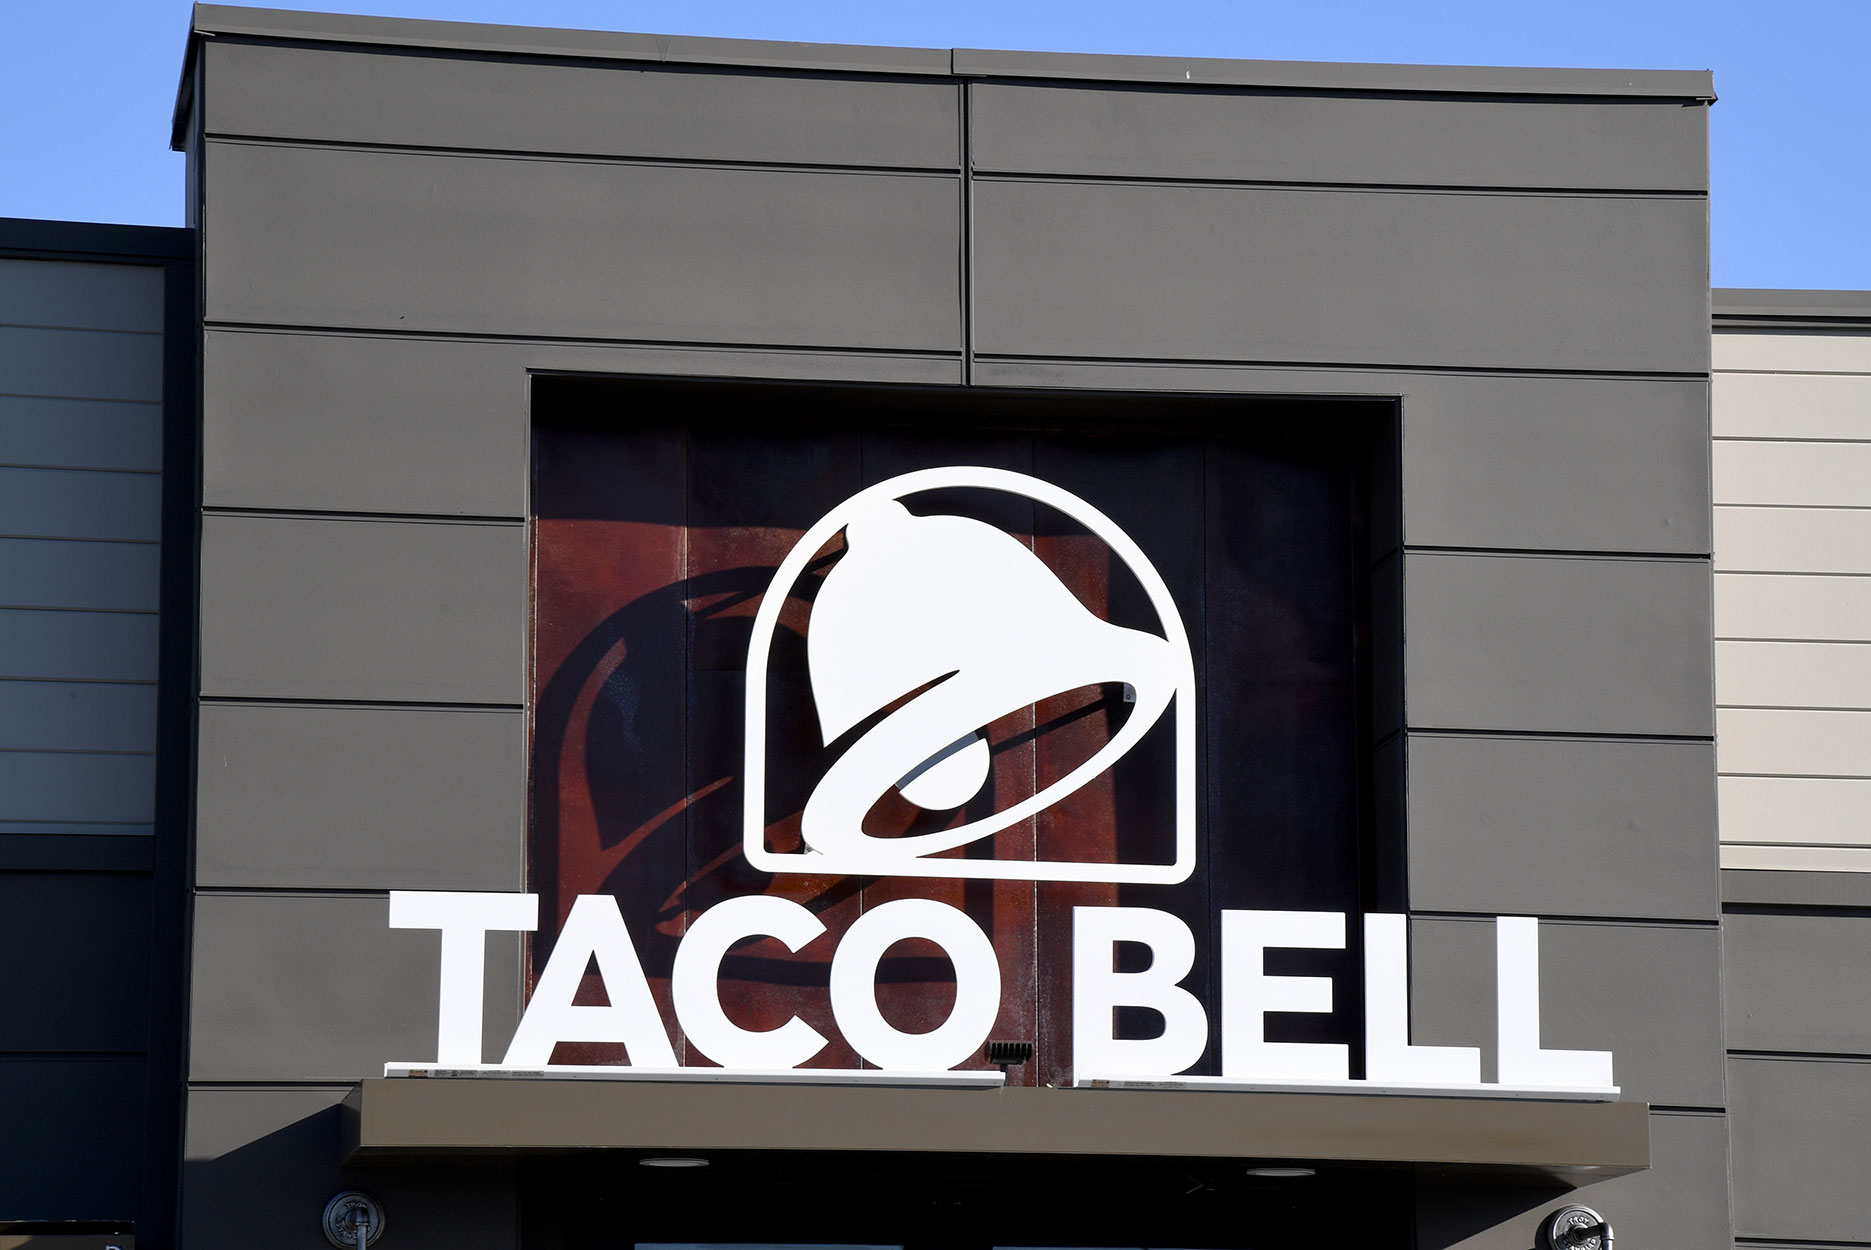 A Taco Bell restaurant location